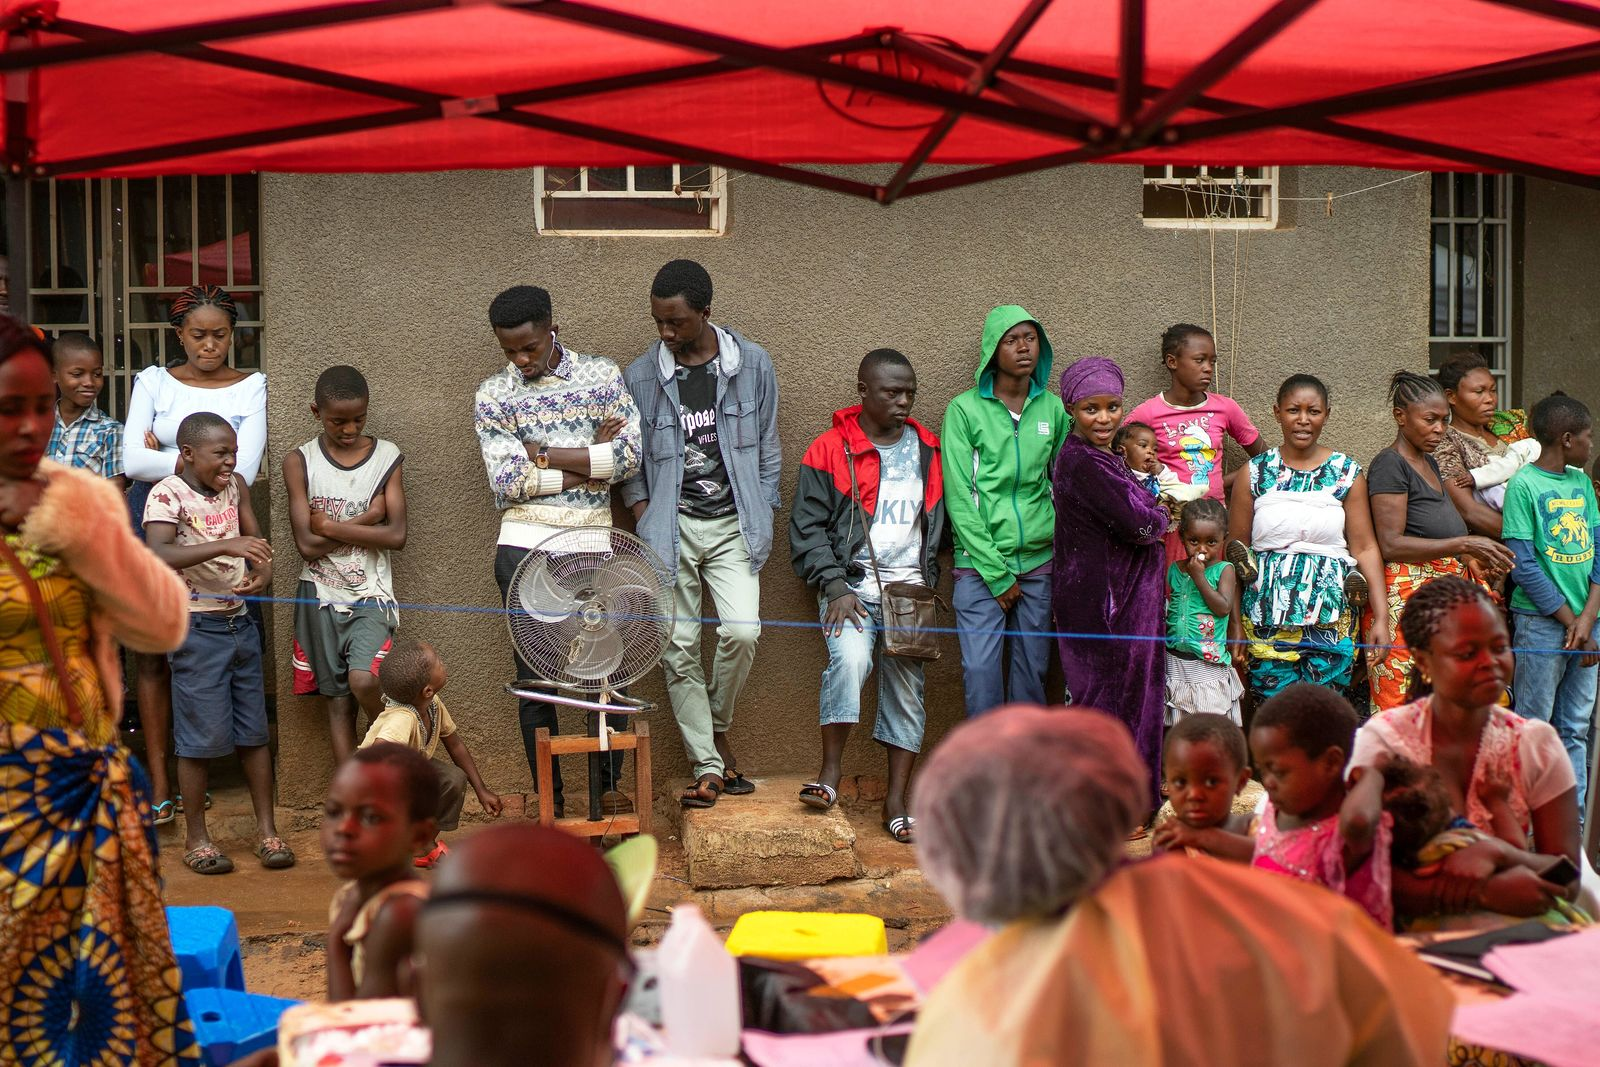 In this photograph taken Saturday July 13, 2019, residents wait in line to receive the Ebola vaccine in Beni, Congo DRC. The head of the World Health Organization is convening a meeting of experts Wednesday July 17, 2019, to decide whether the Ebola outbreak should be declared an international emergency after spreading to eastern Congo's biggest city, Goma, this week. More than 1,600 people in eastern Congo have died as the virus has spread in areas too dangerous for health teams to access. (AP Photo/Jerome Delay)